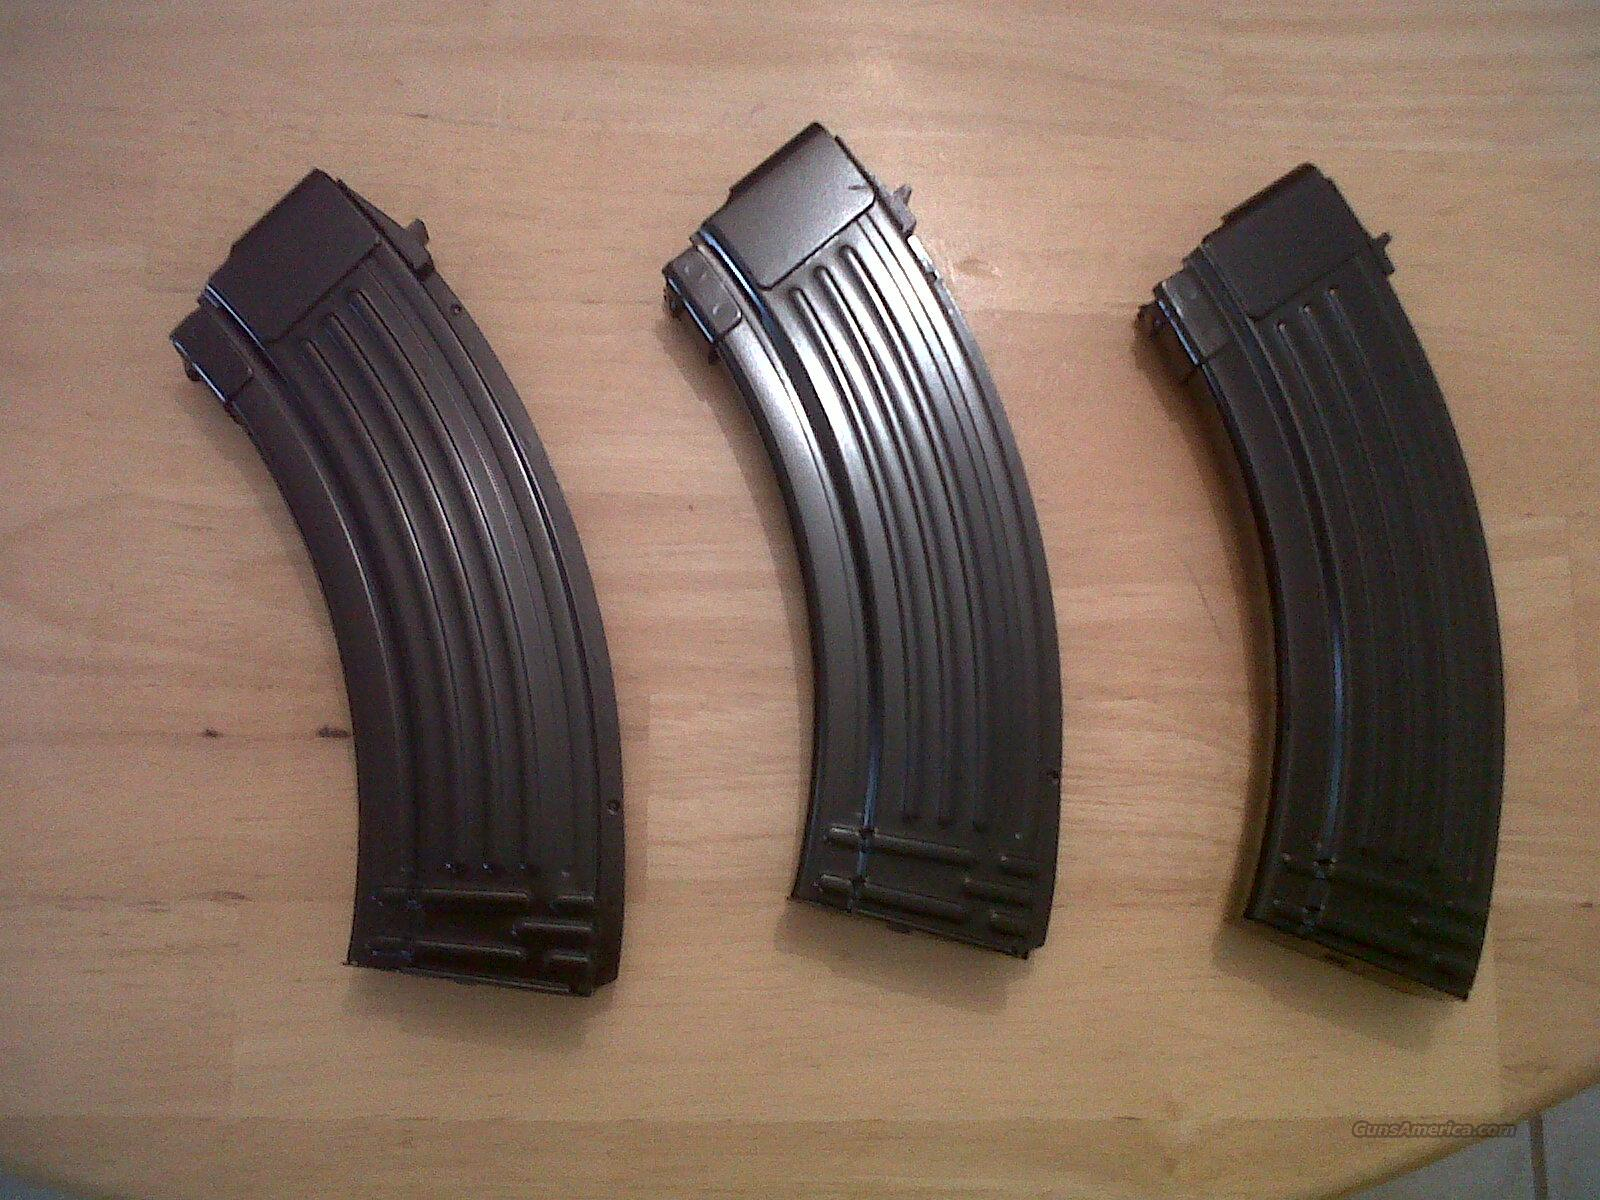 ak47 7.62x39 (4) pack new ak47 (4) pack brand new flawless magazines 30 round magazines high gloss finish price is for a 4 pack of them! ADD $25 a piece to add more to your order Price reduced!ak47  Non-Guns > Magazines & Clips > Rifle Magazines > AK Family